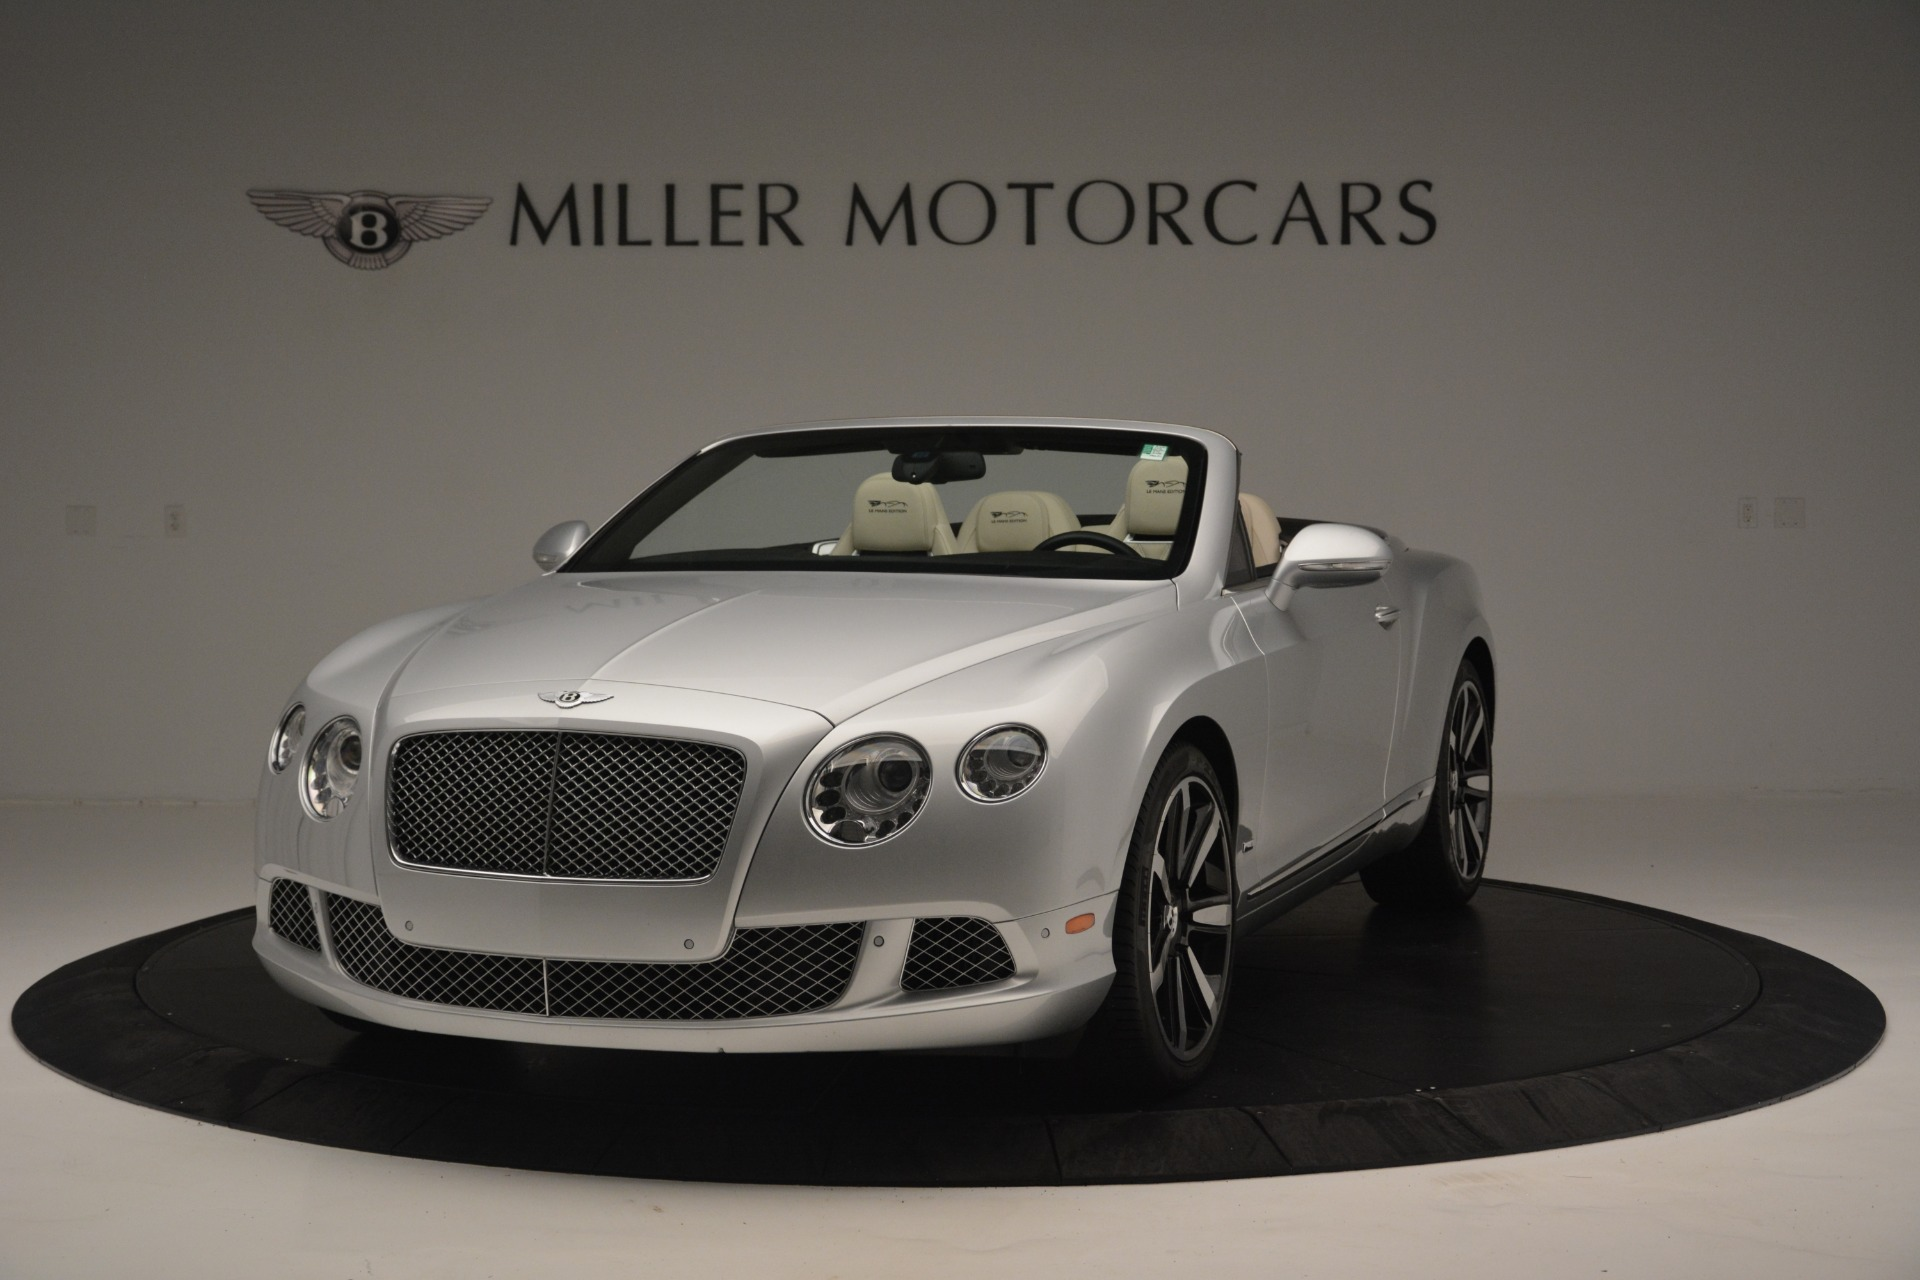 Used 2013 Bentley Continental GT W12 Le Mans Edition for sale Sold at Rolls-Royce Motor Cars Greenwich in Greenwich CT 06830 1